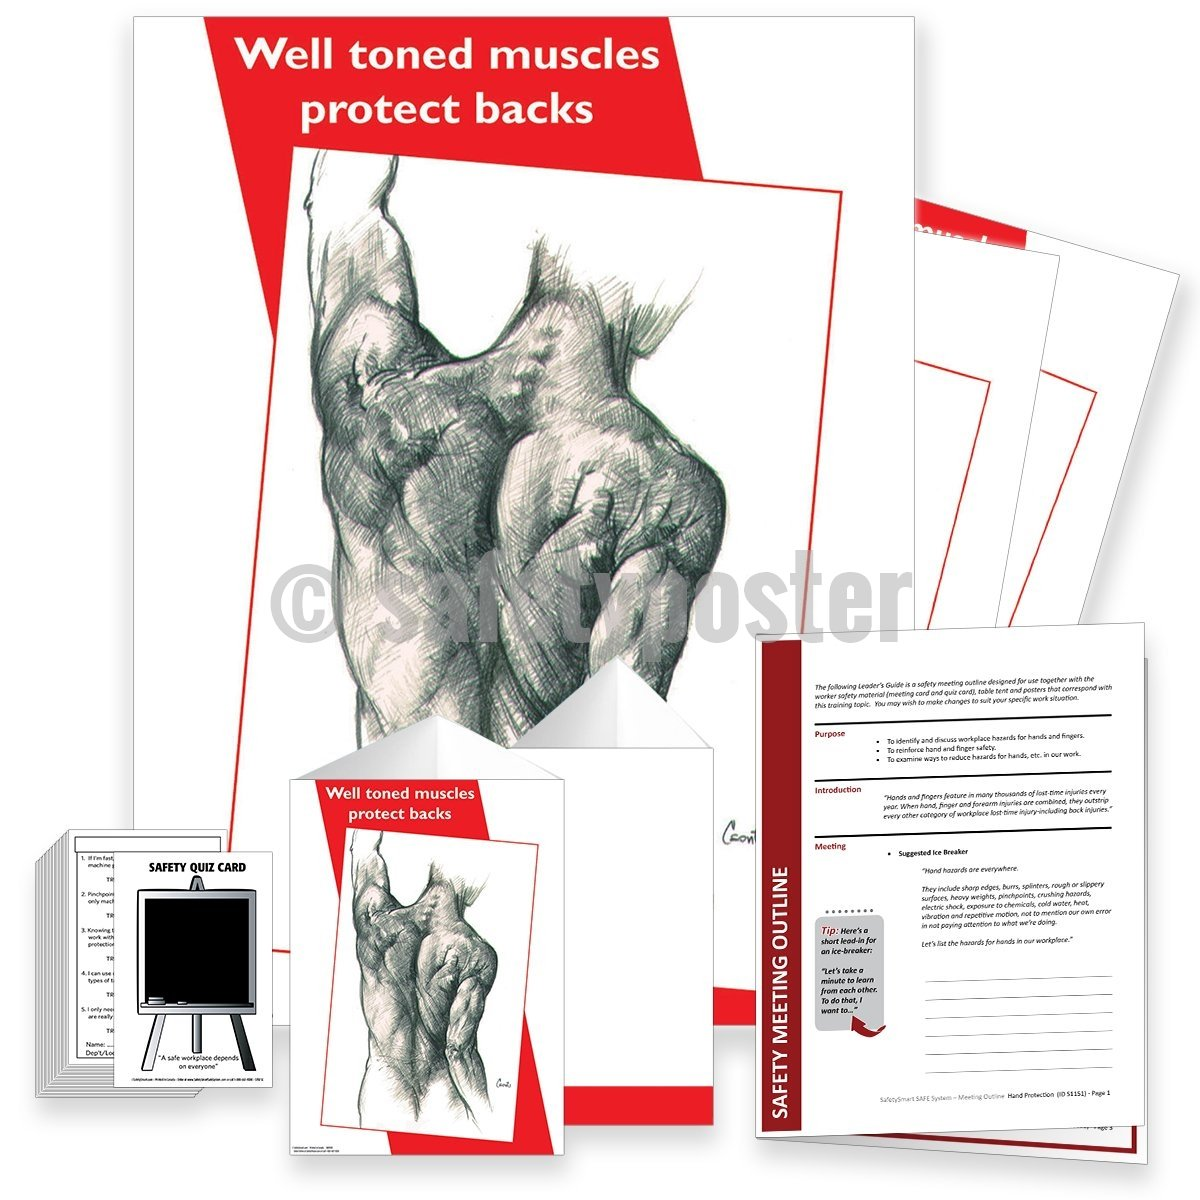 Safety Meeting Kit - Well Toned Muscles Protect Backs Kits